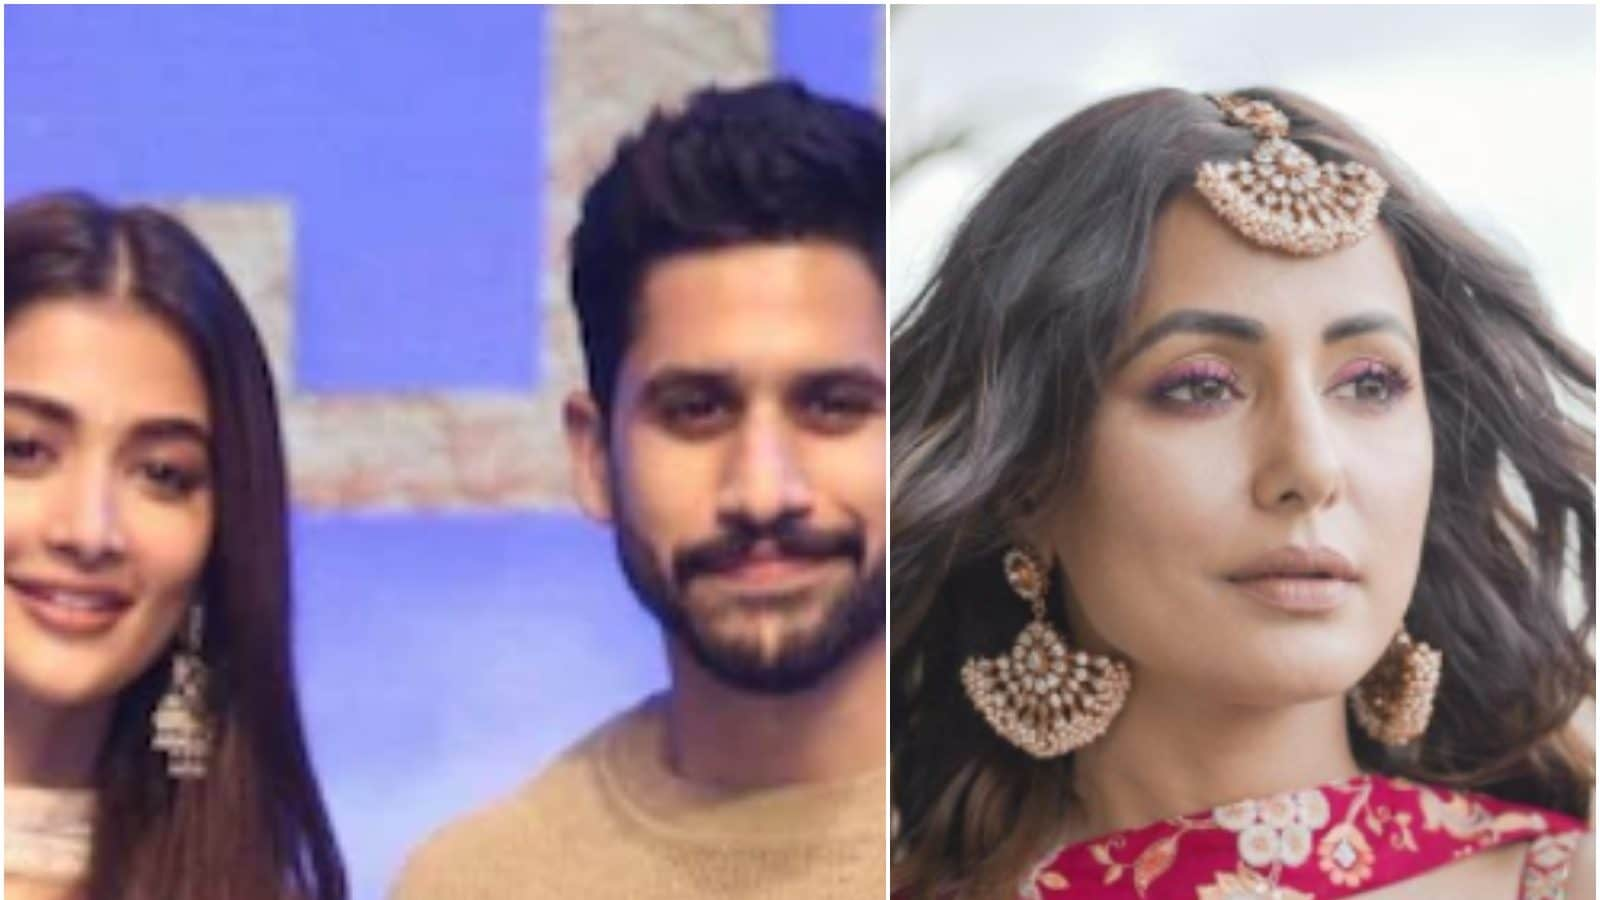 Naga Chaitanya Remains Mature in First Public Appearance After Divorce, Hina Khan Writes About 'Break up'